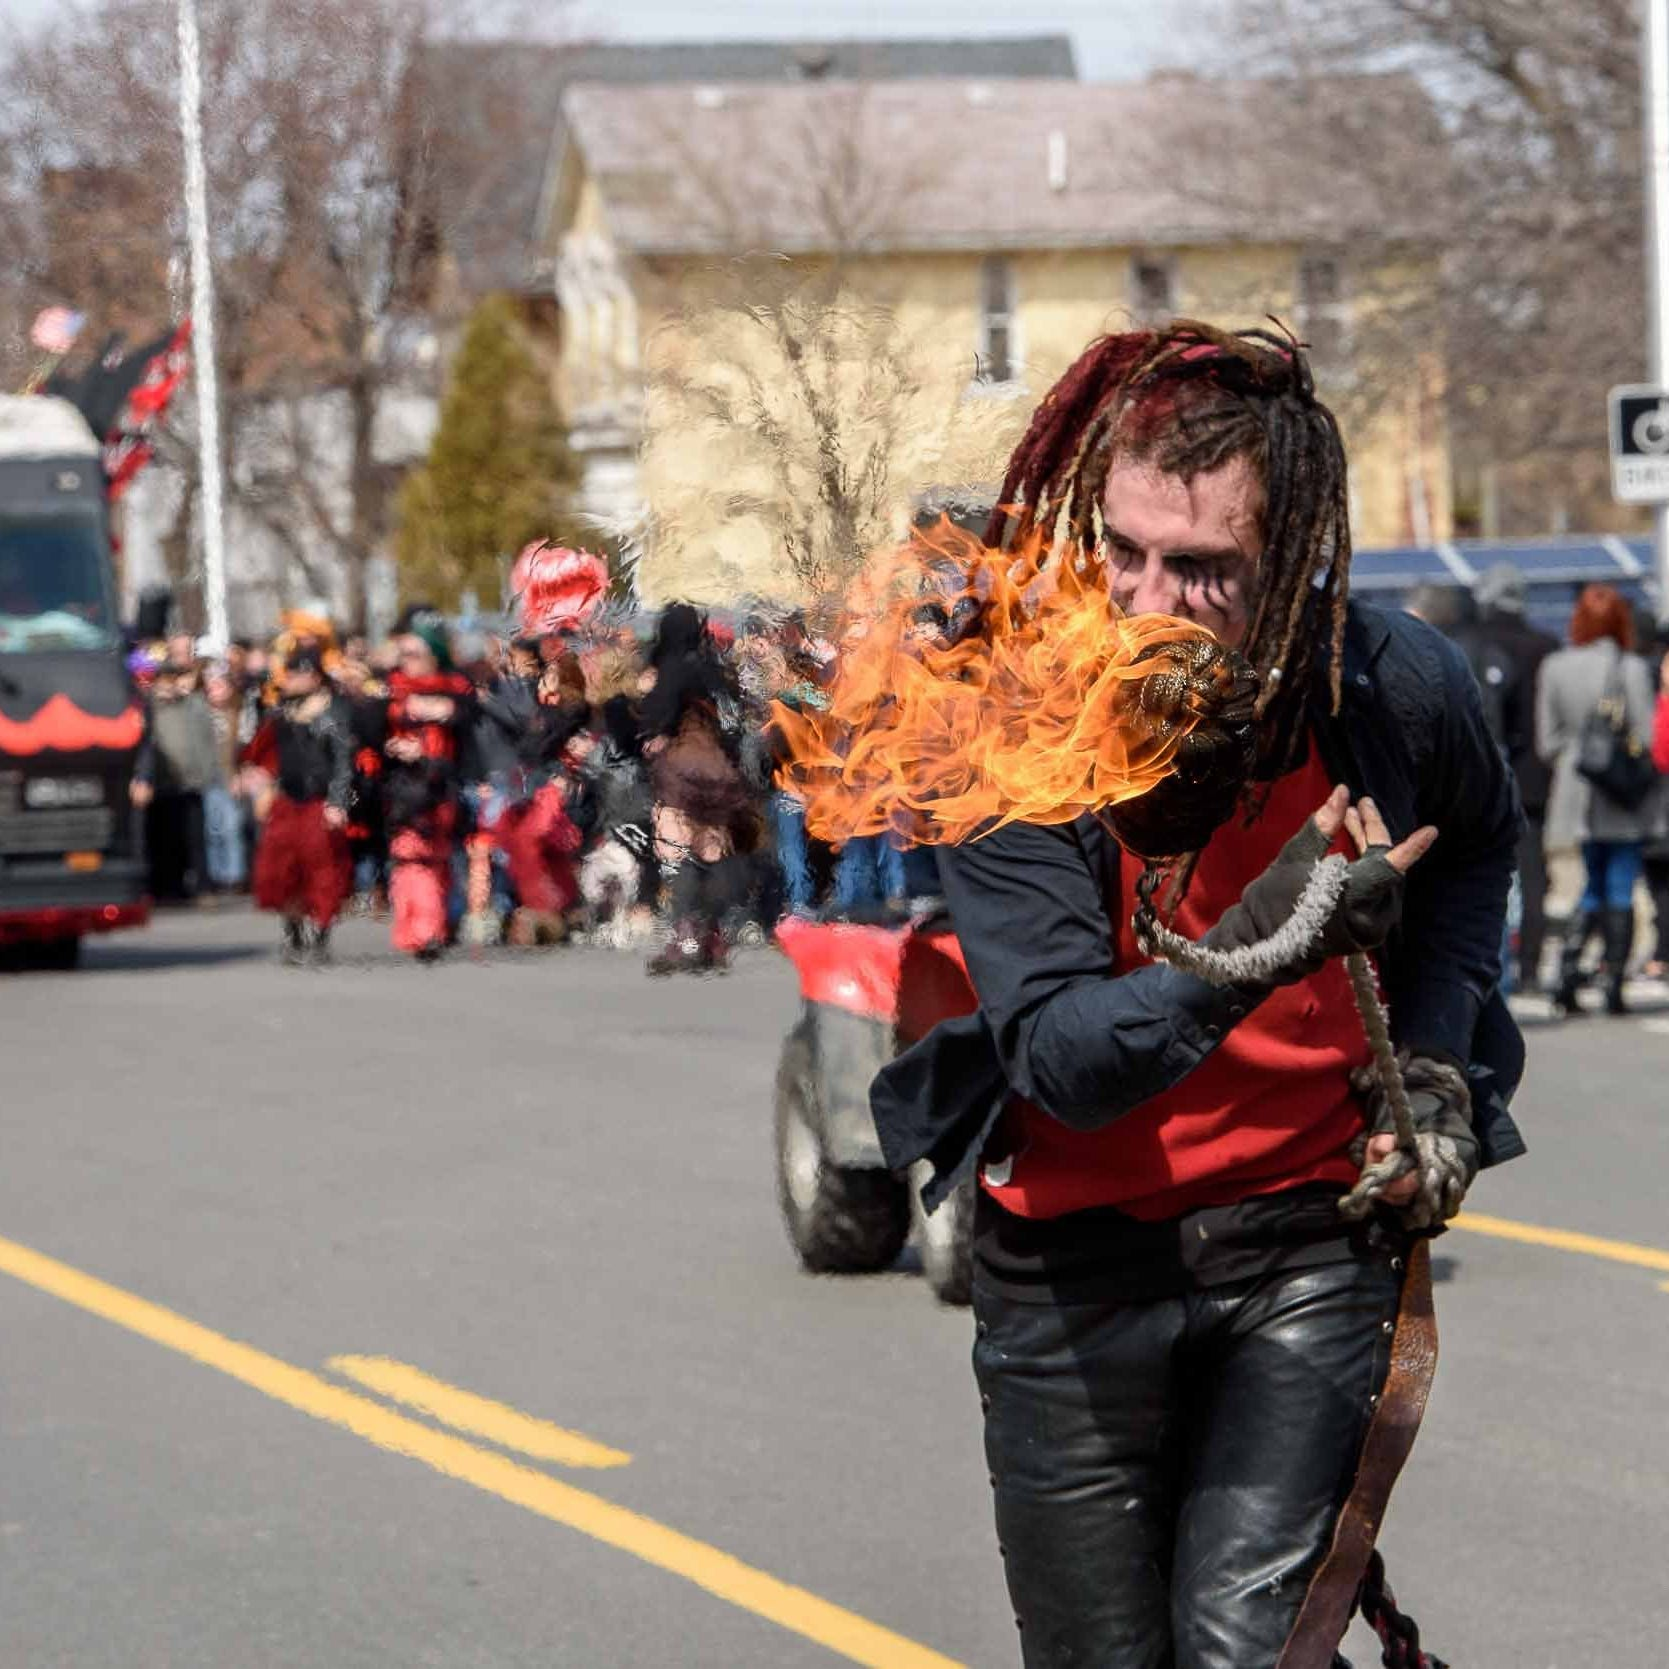 Merrymakers chase away the Nain Rouge at annual Mardi Gras-like event